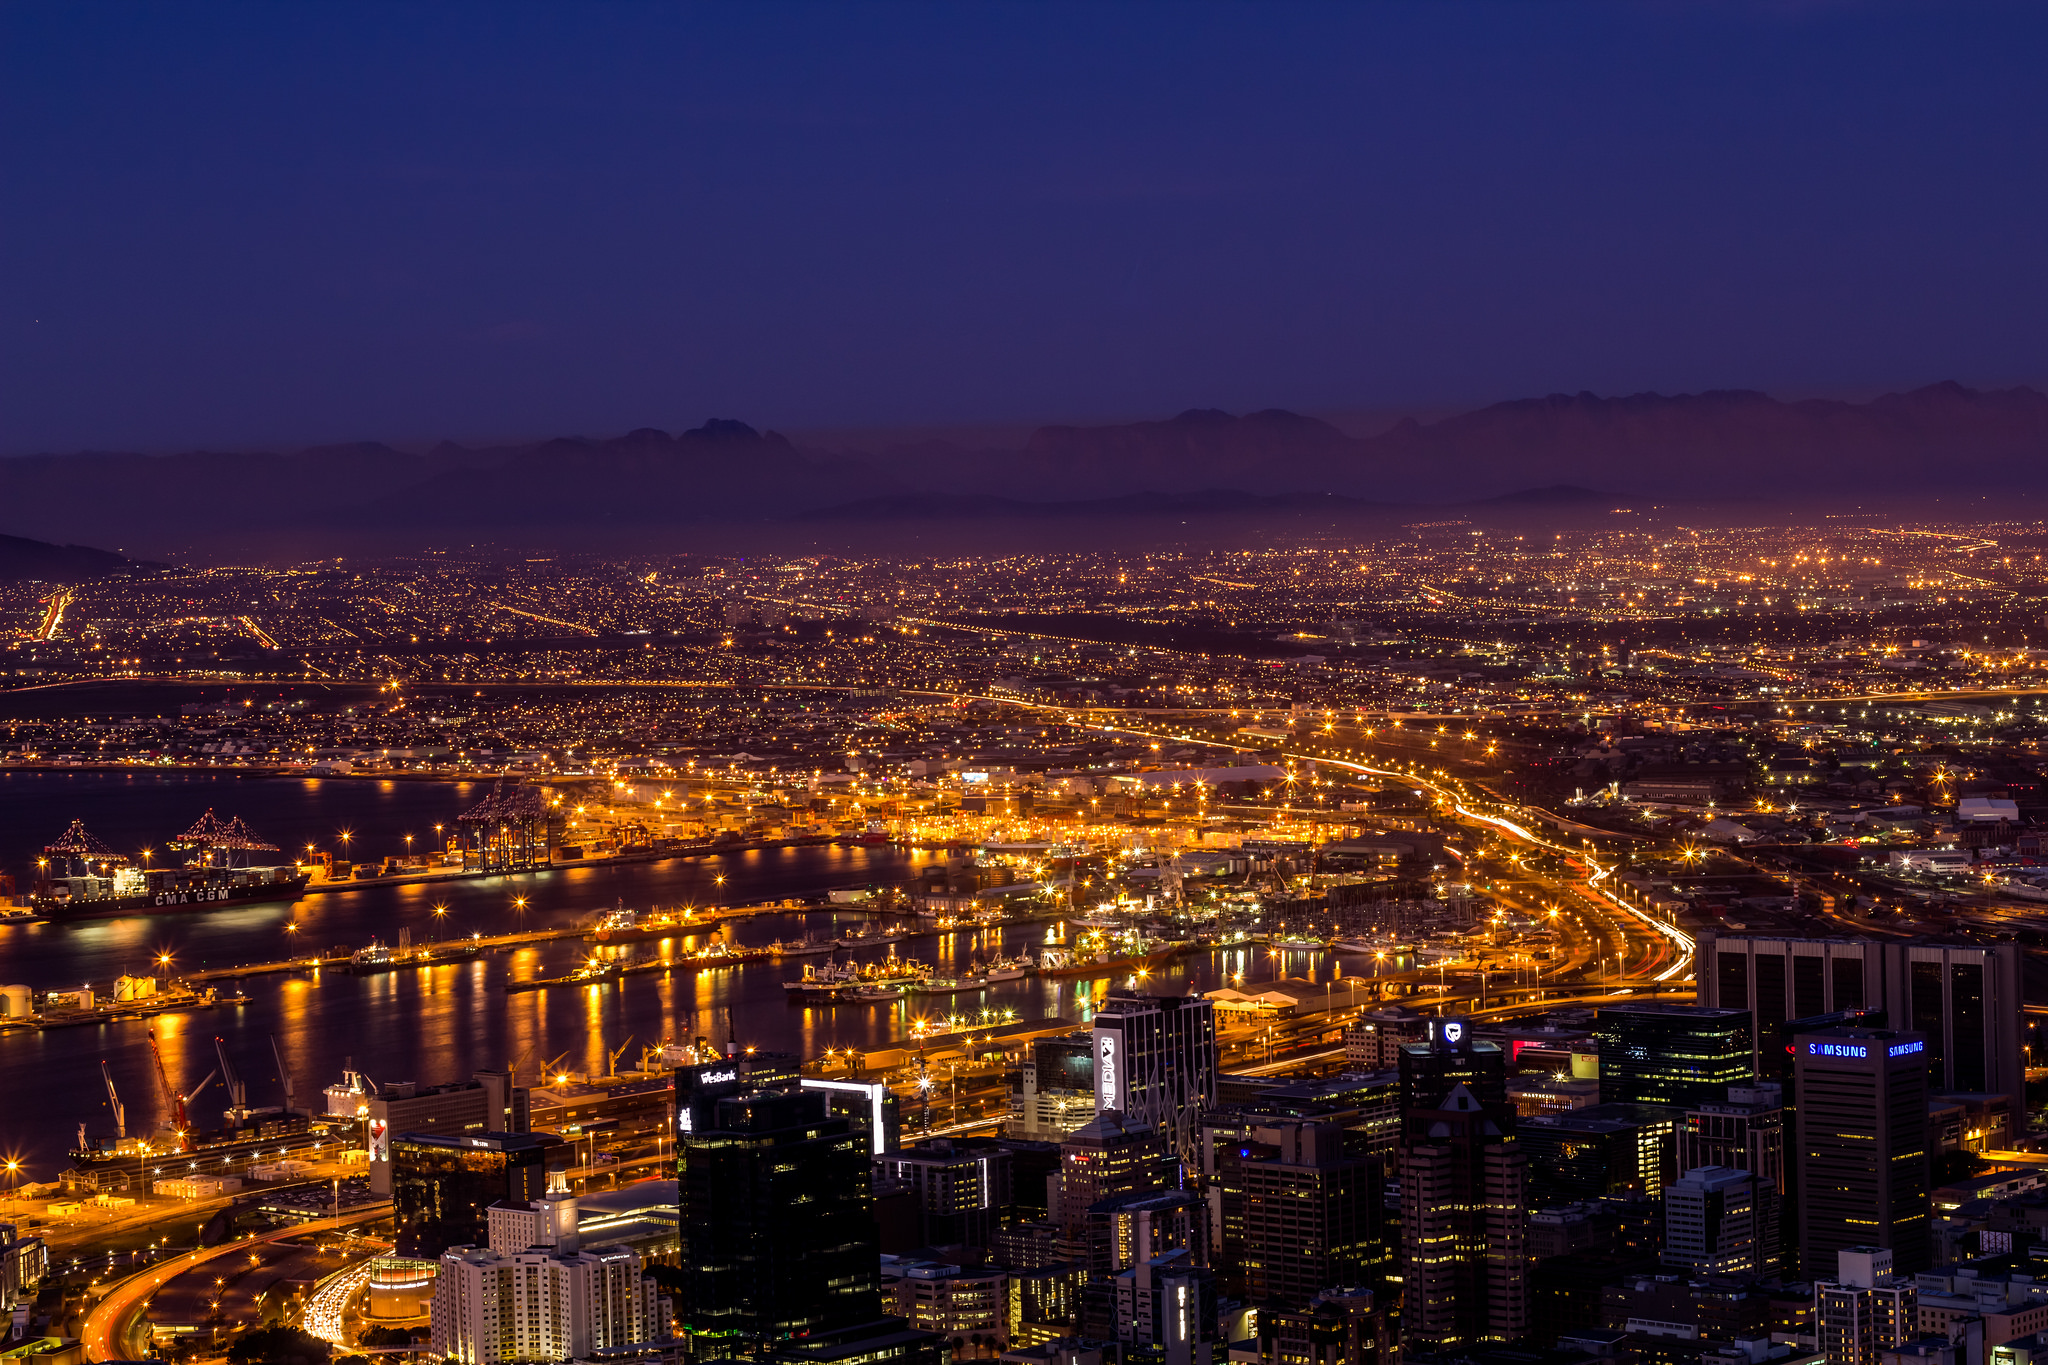 <p>Cape Town in the evening. Flickr/Kyle Witting</p>